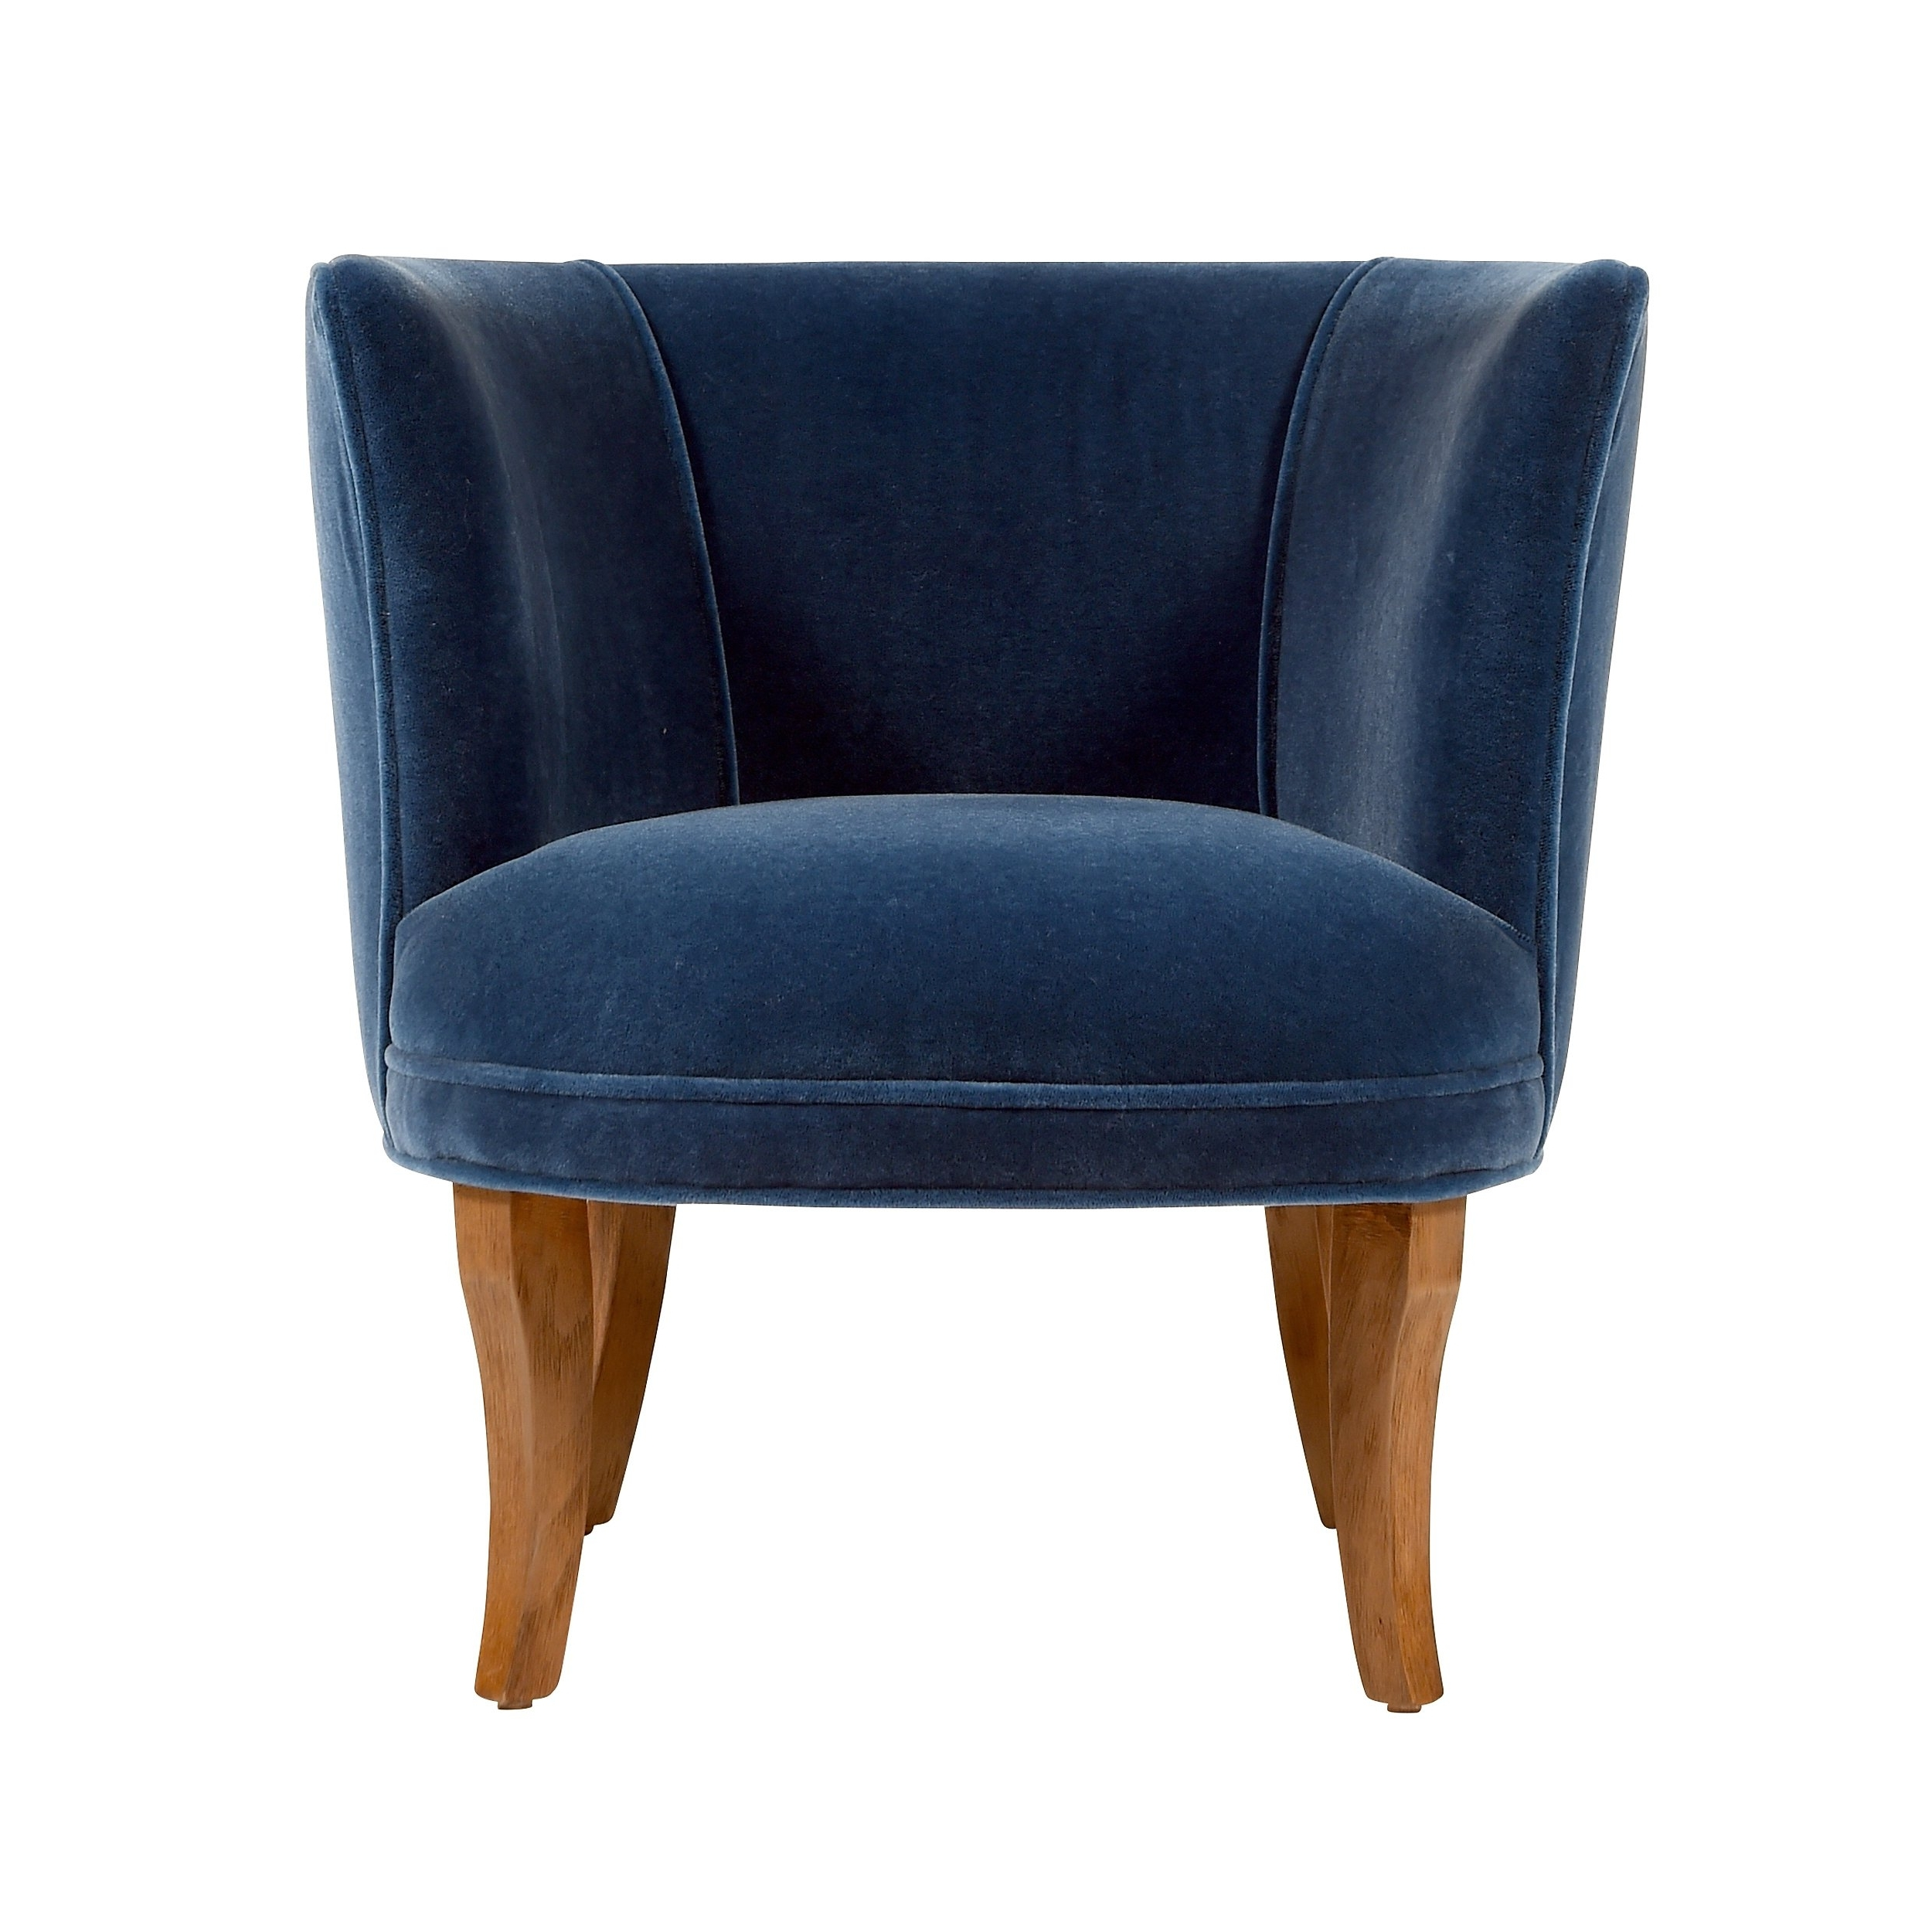 Most Current Jaxon Upholstered Side Chairs Intended For Shop Jaxon Bella Navy Blue Velvet Upholstered Armchair – Free (View 10 of 20)